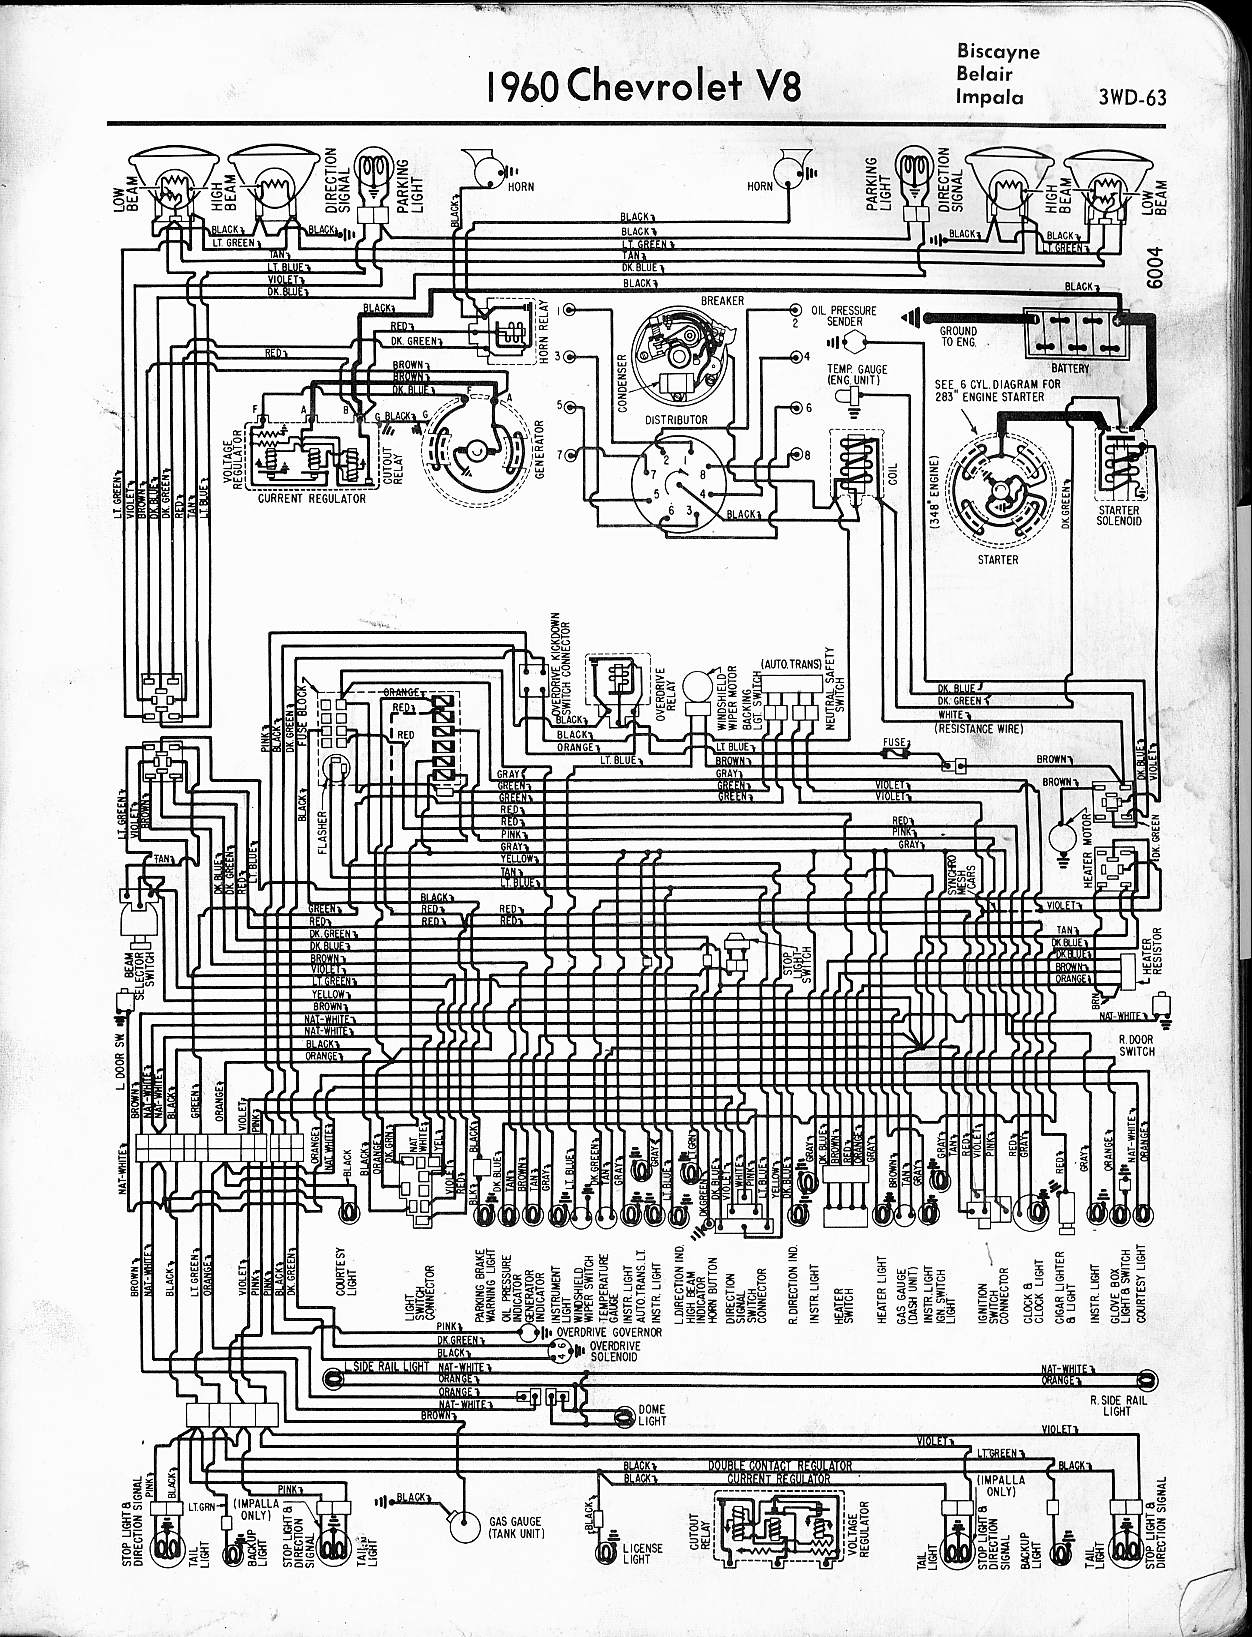 1964 Corvette Starter Wiring Diagram Free For You Gm Engine Harness 1979 1962 Simple Schema Rh 44 Aspire Atlantis De